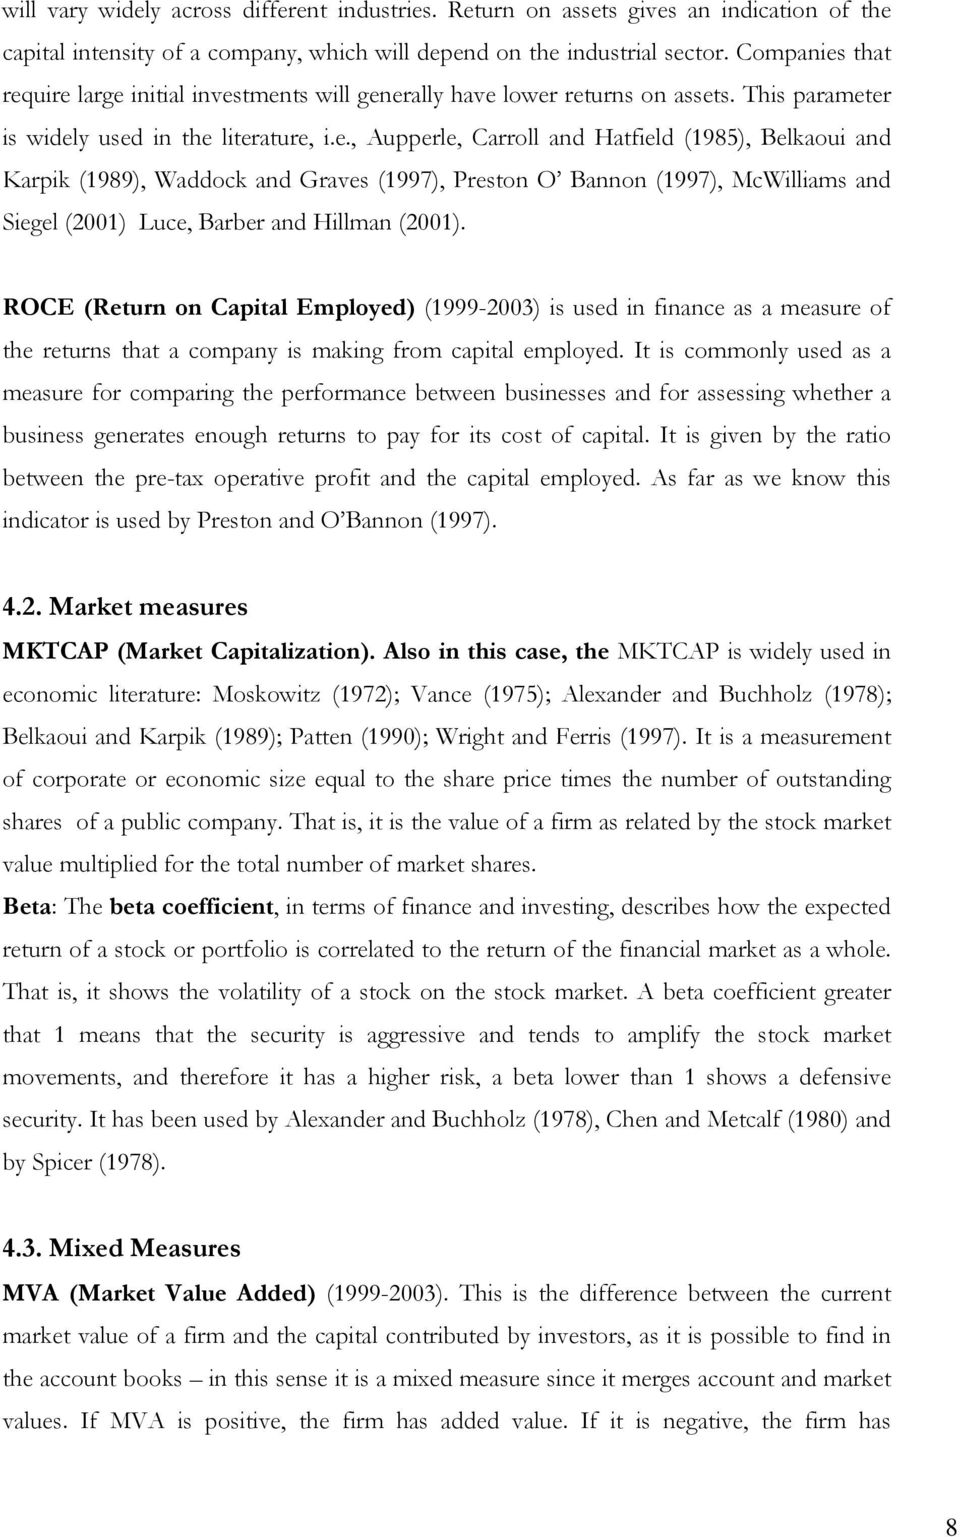 ROCE (Return on Capal Employed) (1999-2003) is used in finance as a measure of the returns that a company is making from capal employed.